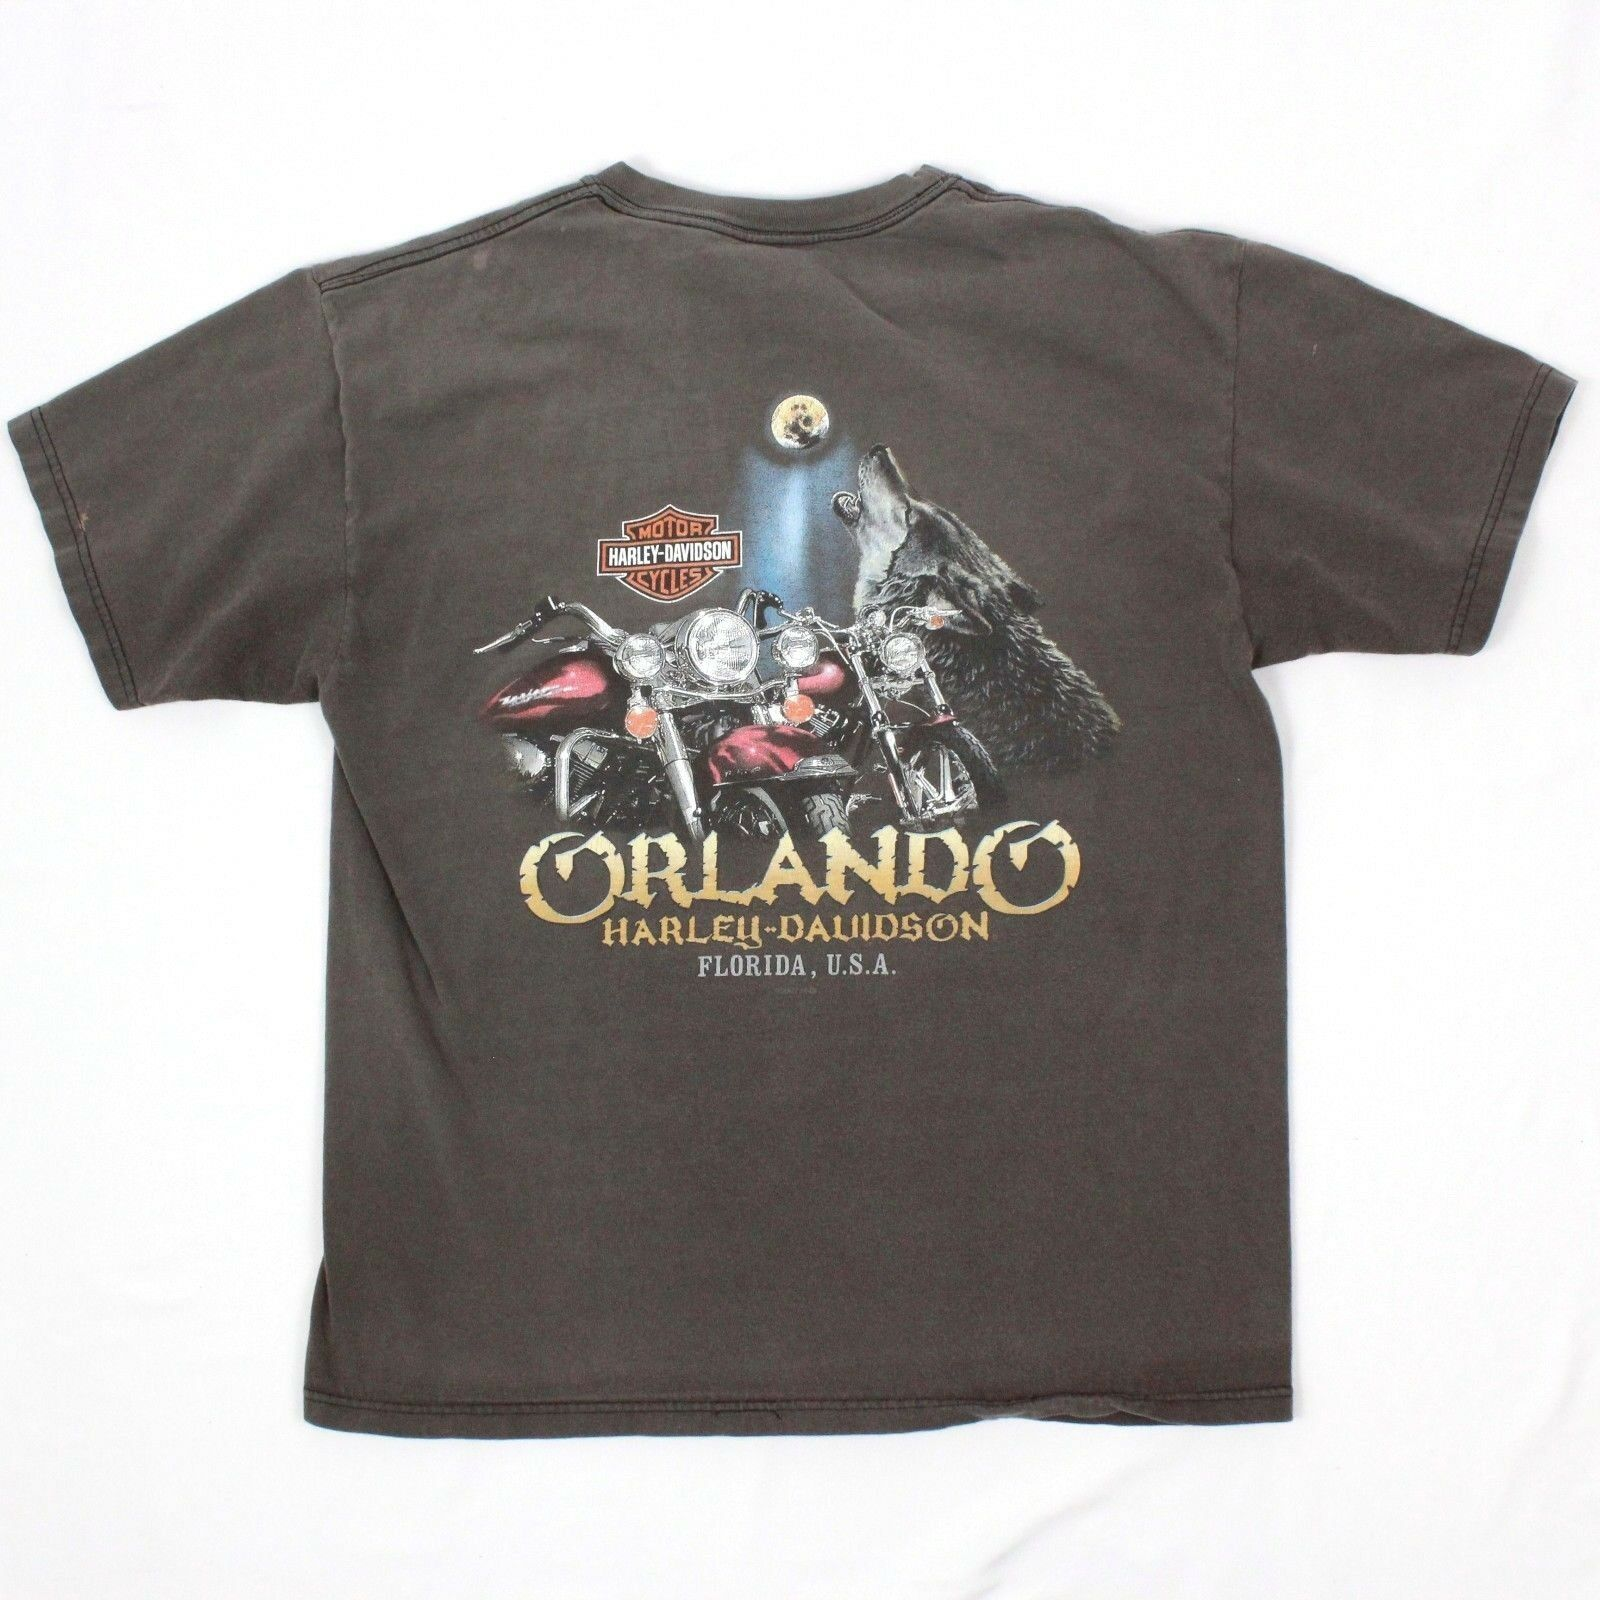 Harley Davidson Orlando Florida Tee Size Large Men L Two Sided Tshirt USA MADE